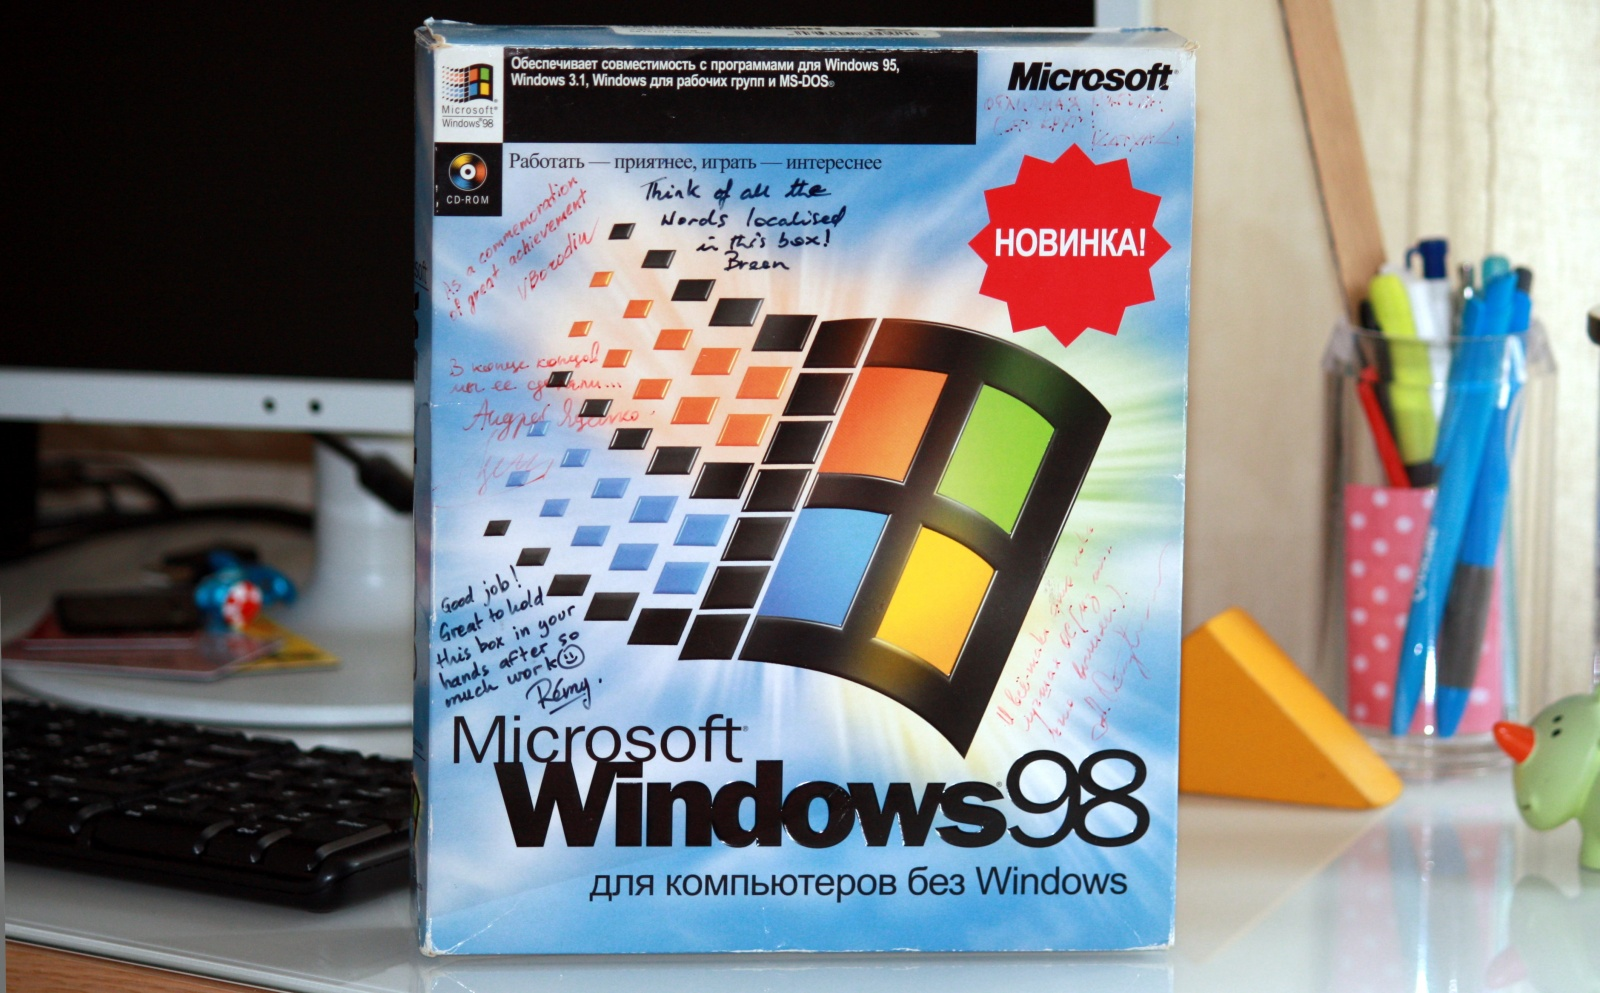 Windows 98 RU signed by Microsoft WPGI colleagues